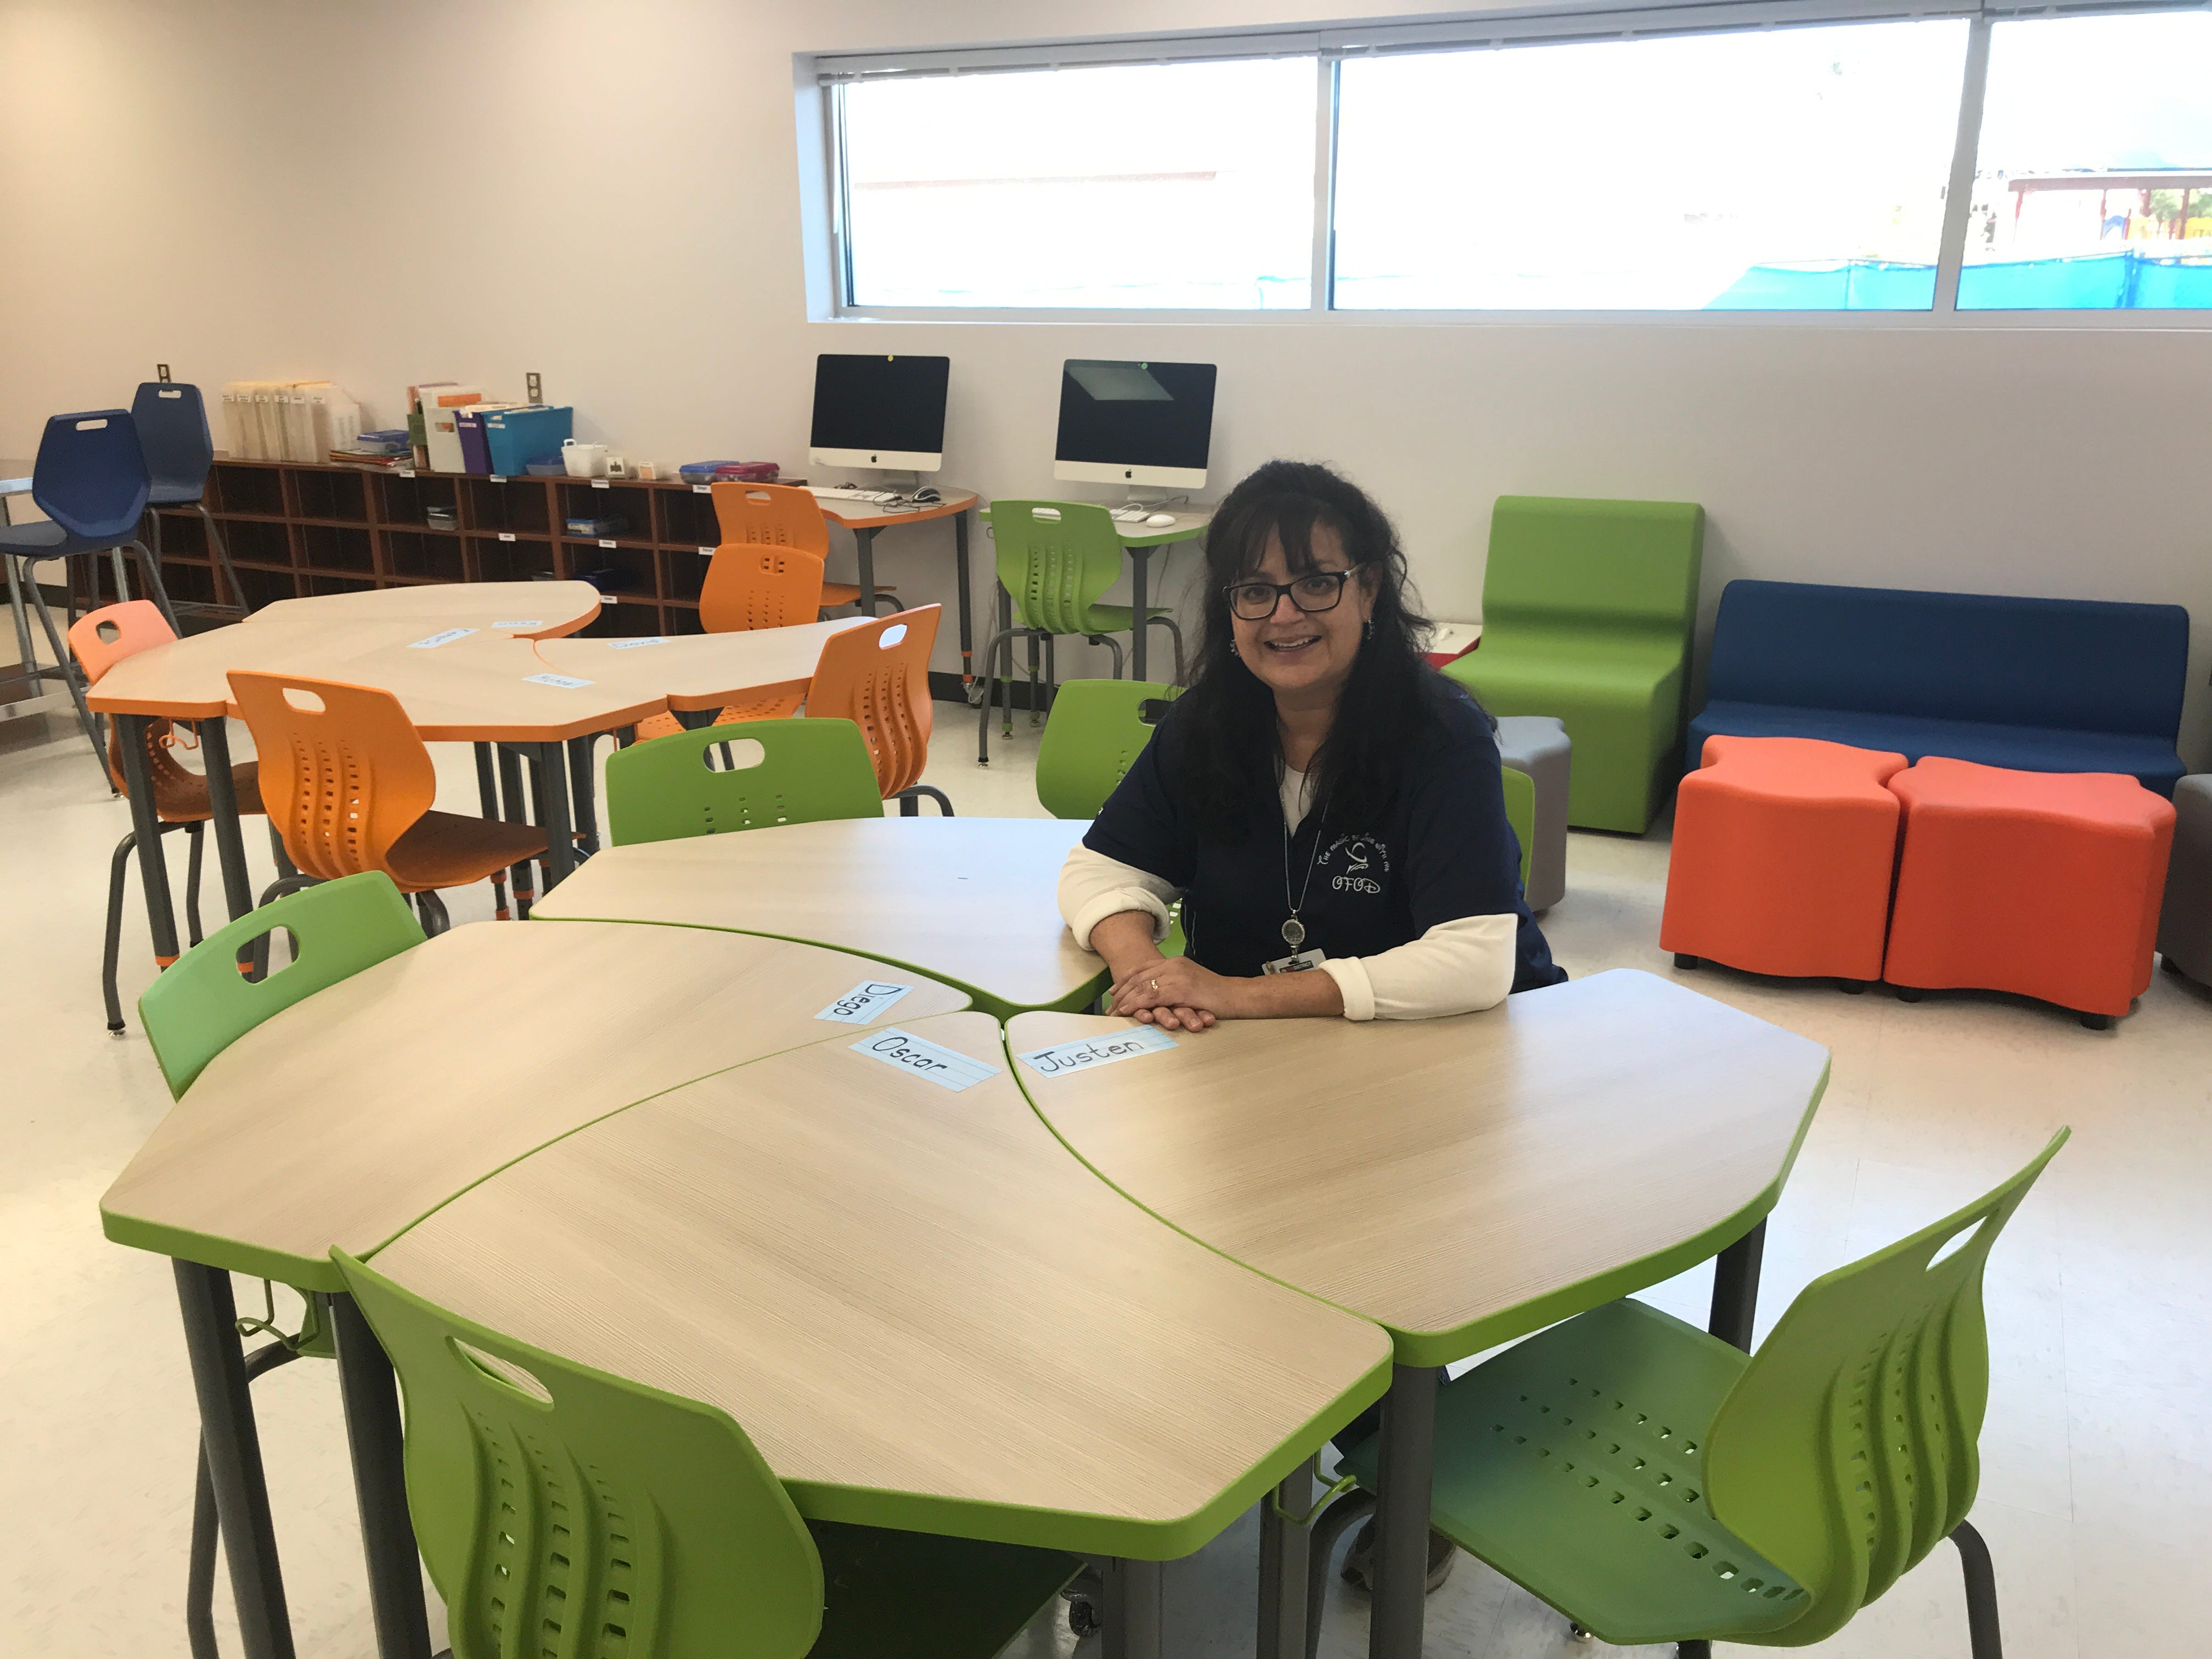 Yoli Marquez, a special education teacher, sits in her new classroom at Del Valle Middle School. The classroom has a kitchen, handicapped bathroom and laundry area to help serve special needs students better.